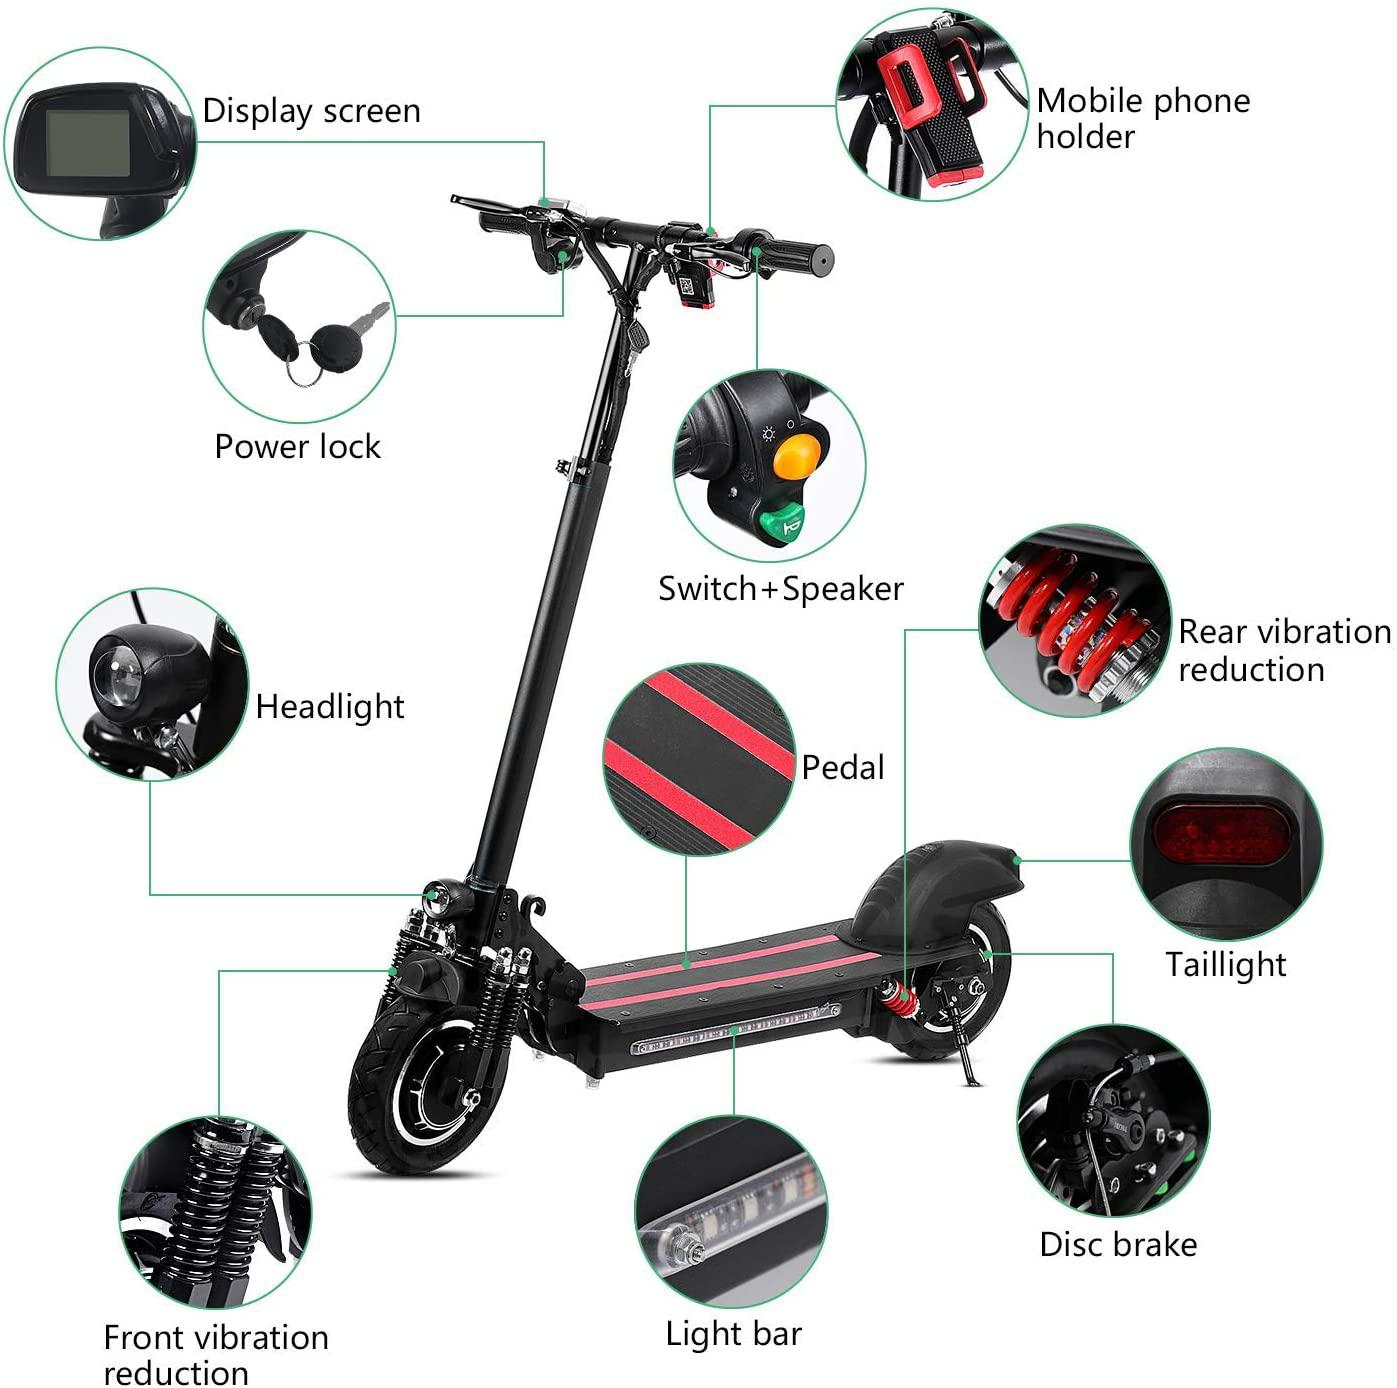 d3a254b94315 - Coupon code for Powerful Lamtwheel 10 Inch Folding Electric Kick Scooters for Adults Single Motor 600W 48V 12Ah - Black Germany 1 piece (promotion for new shop)